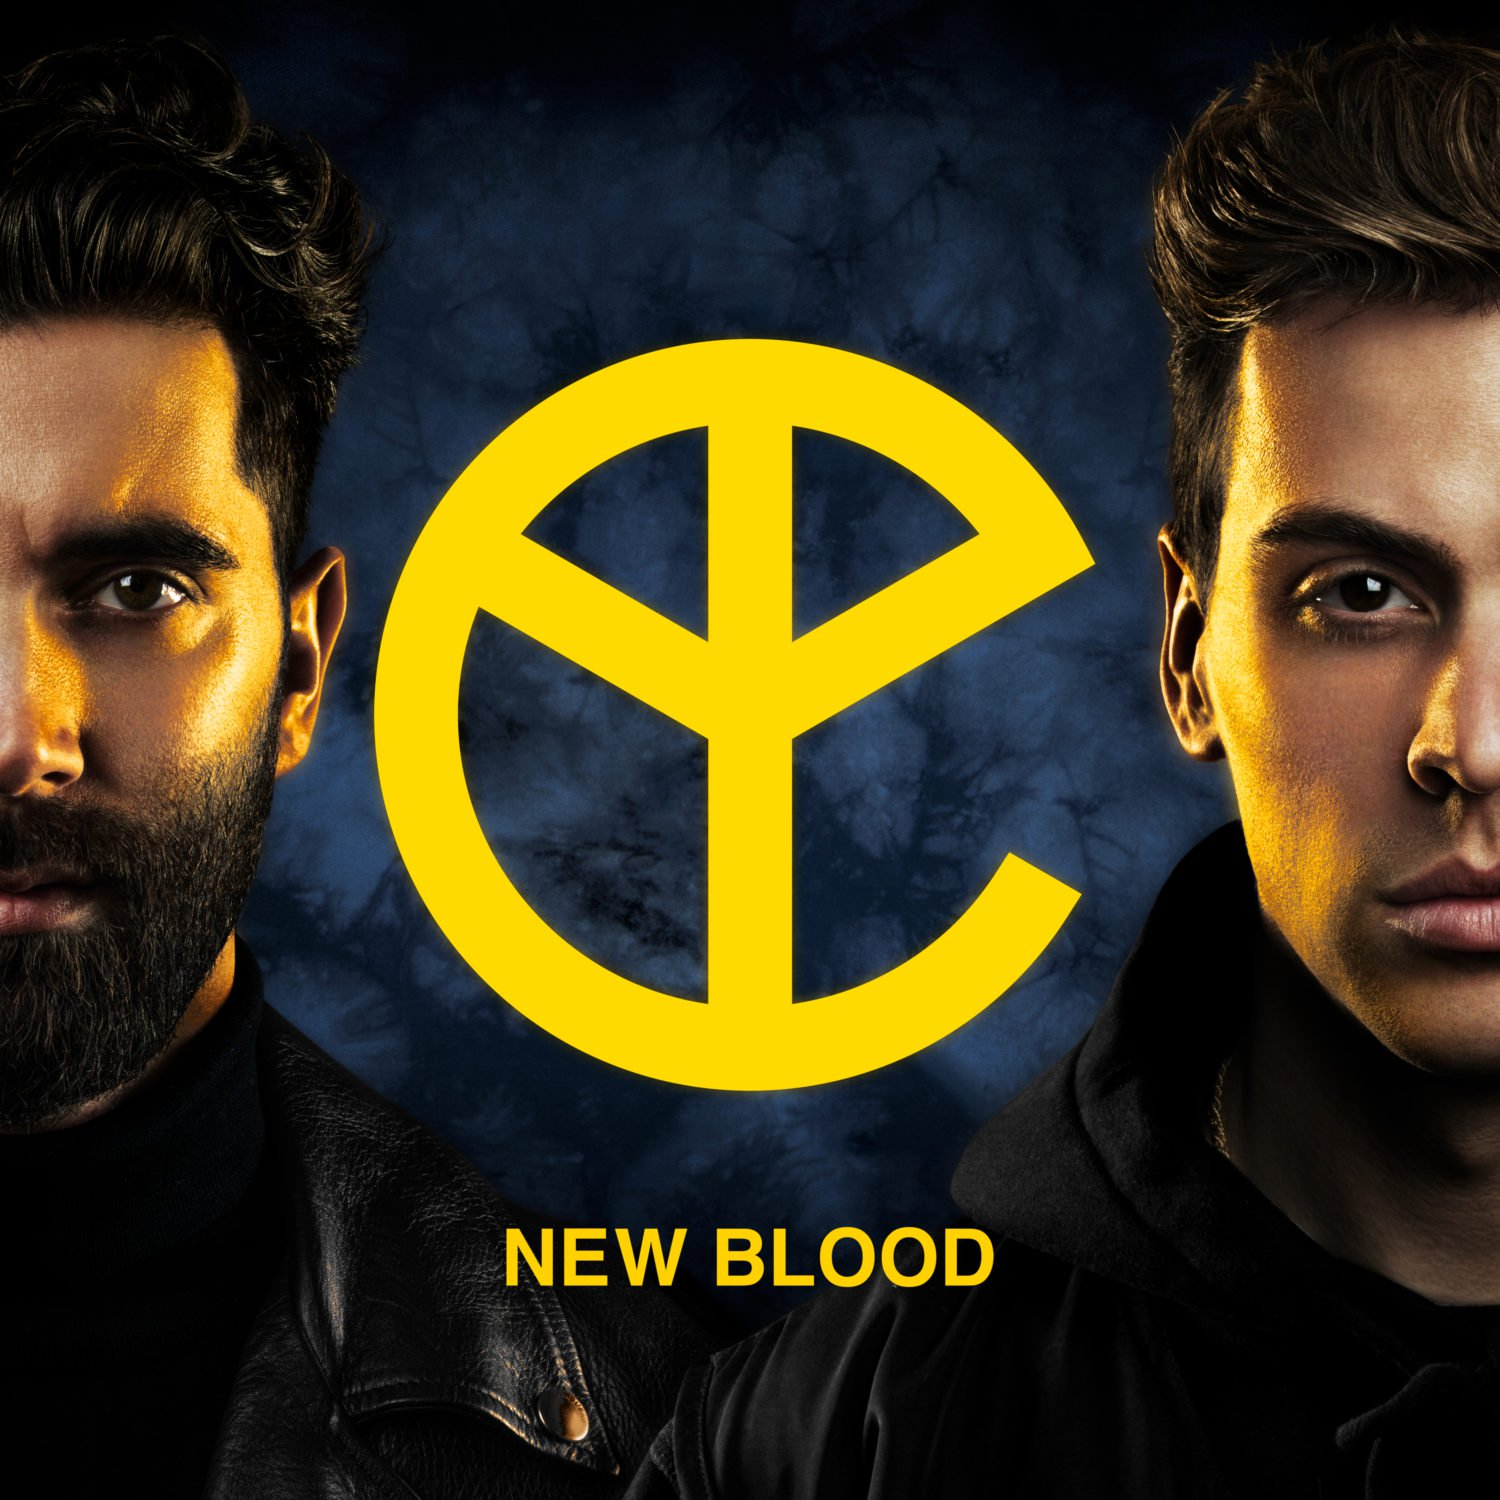 Yellow Claw Announces Third Album, 'New Blood,' Out June 22